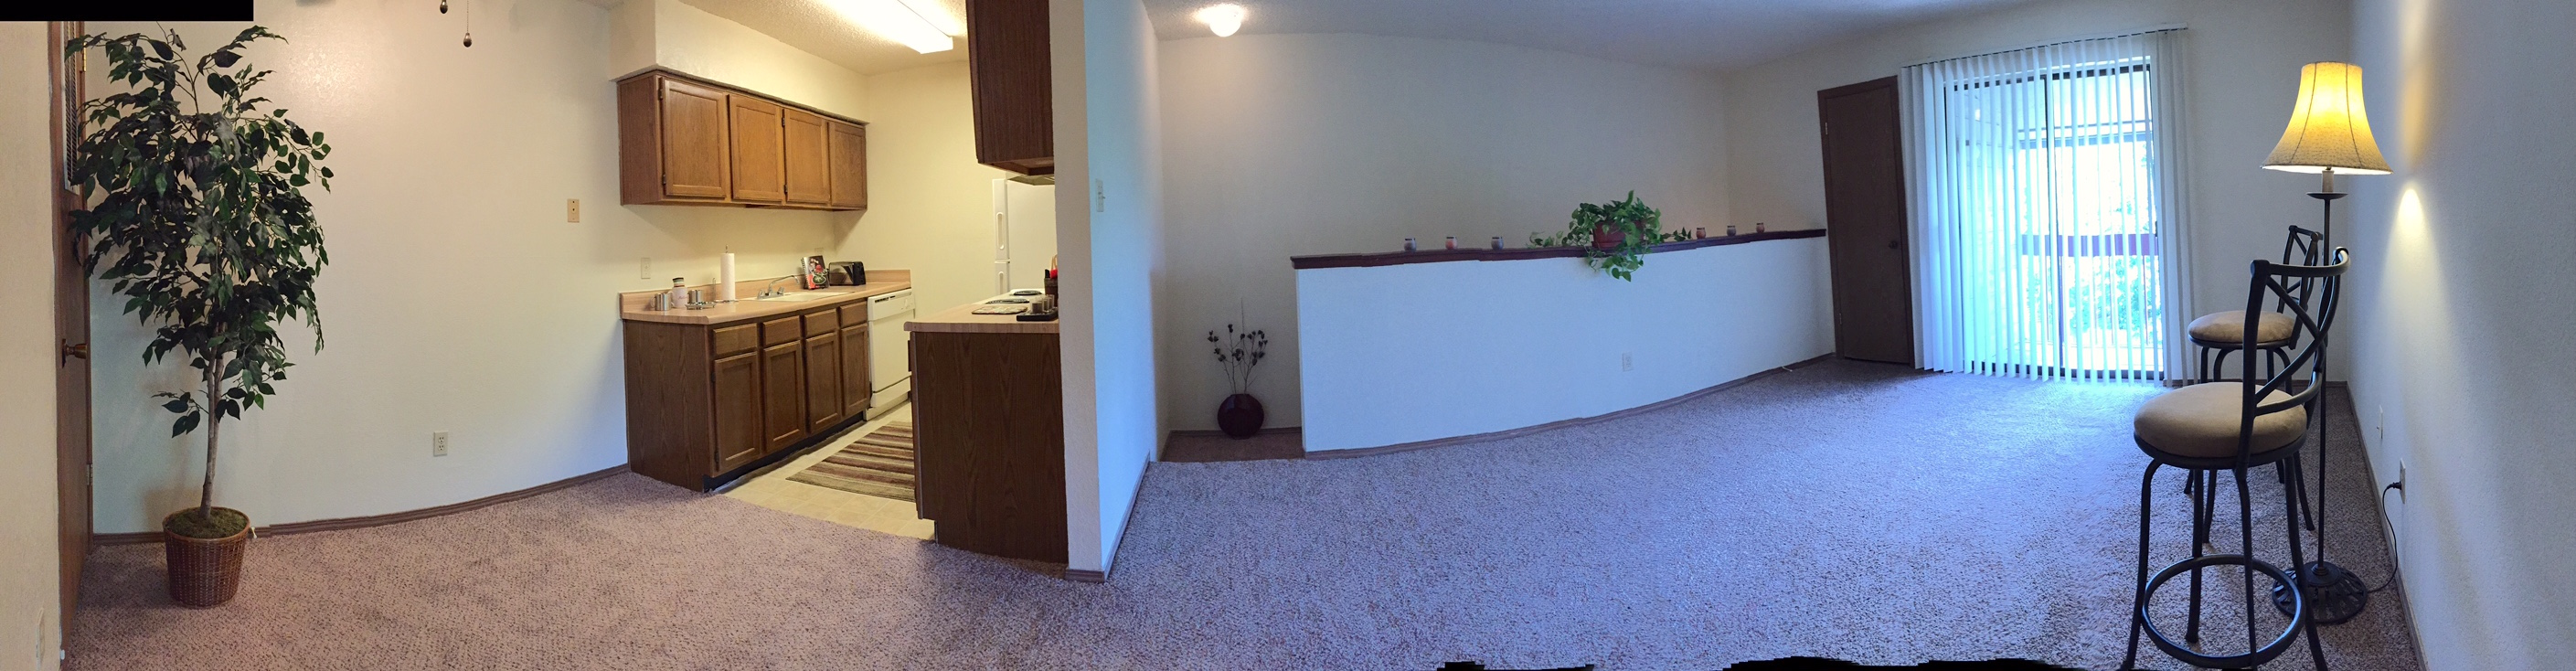 Panoramic - Kitchen, Dining, Living Rooms